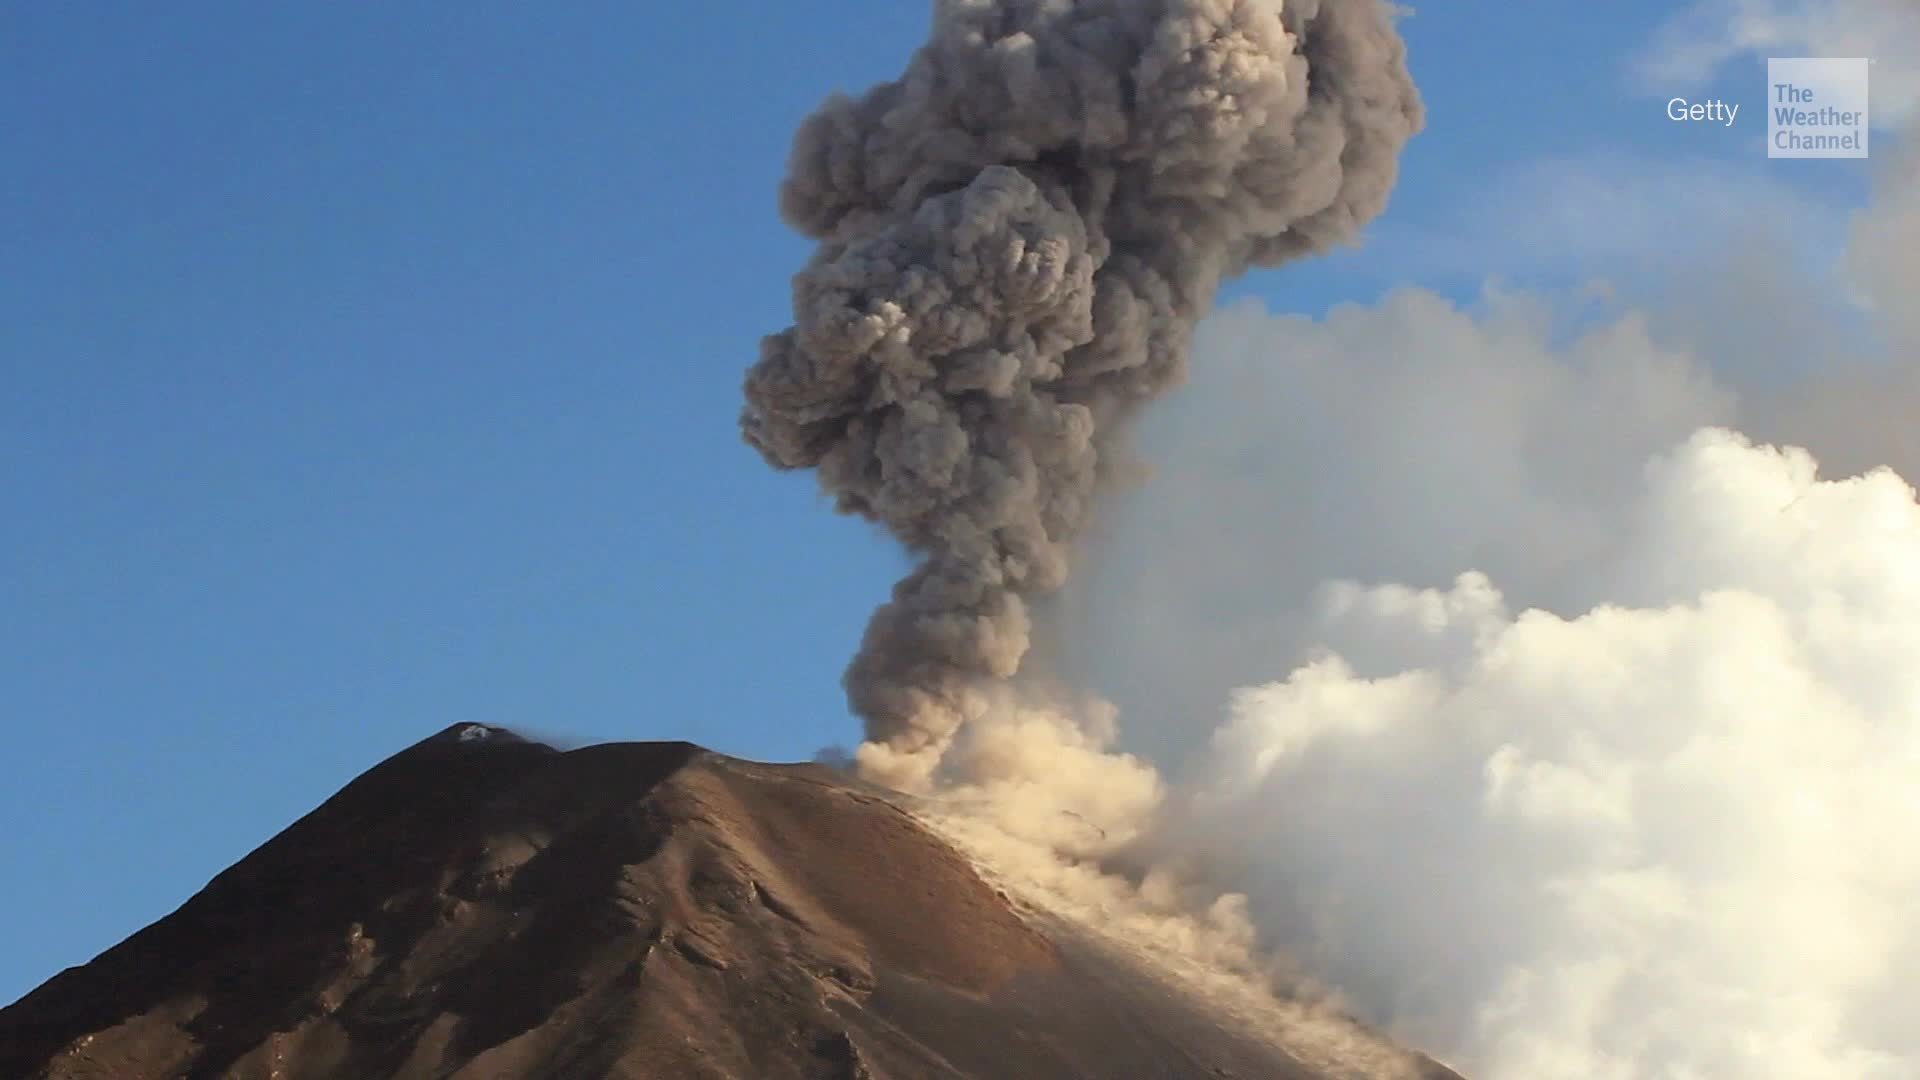 The Tungurahua volcano in Ecuador is in danger of collapse, threatening thousands of people who live near the active volcano.